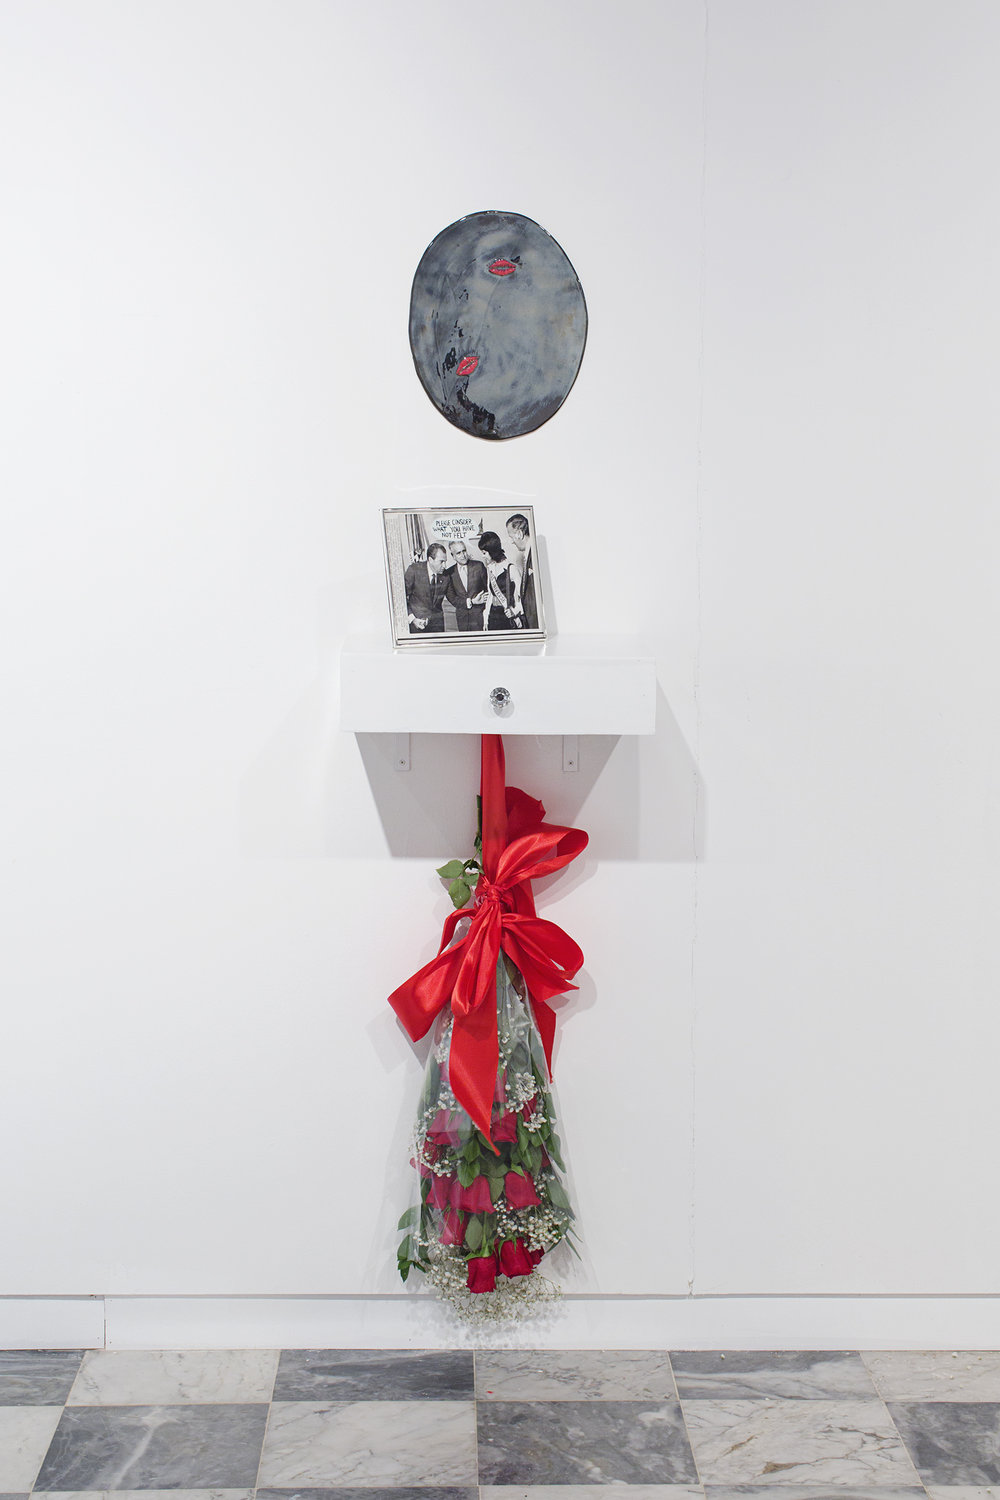 "Marisol Malaret, Miss Universe 1970, 2018   Porcelain mirror, original 1970 press photo on vanity, red roses, silk, cellophane, baby's breath, hardware Porcelain mirror 14 x 8"" (35.6 x 20.3 cm), vanity shelf 12 x 18 x 4.5"" (30.5 x 45.7 x 11.4 cm)  Overall dimensions variable"